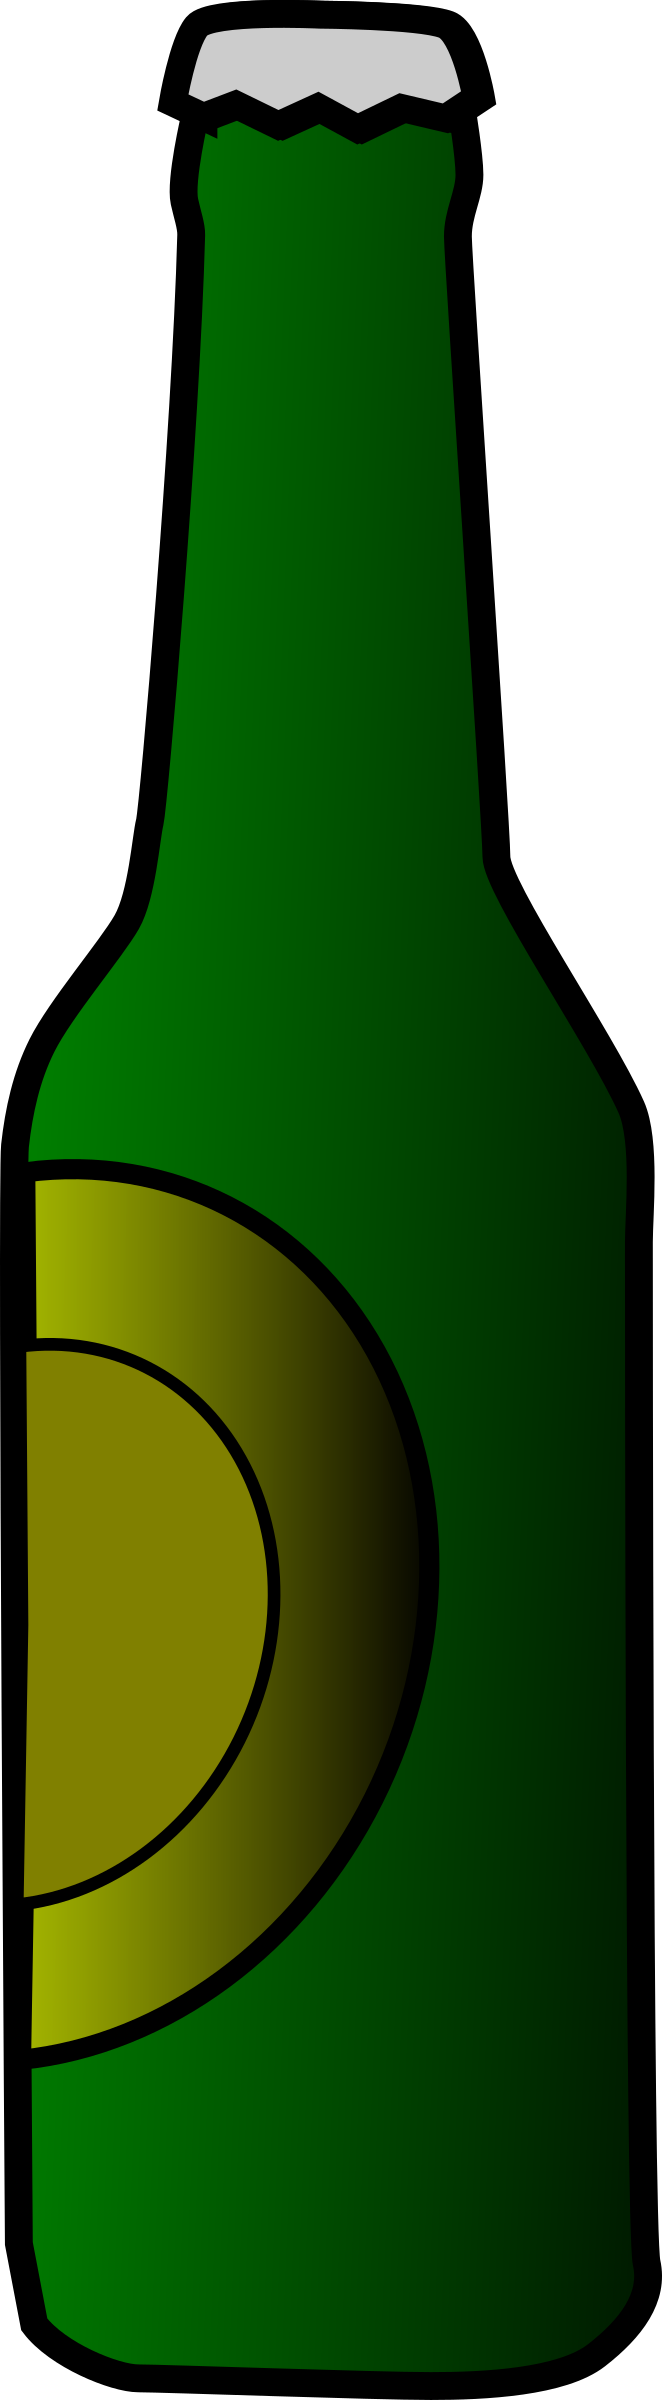 Beer bottle icons png. Drinking clipart bottleclip